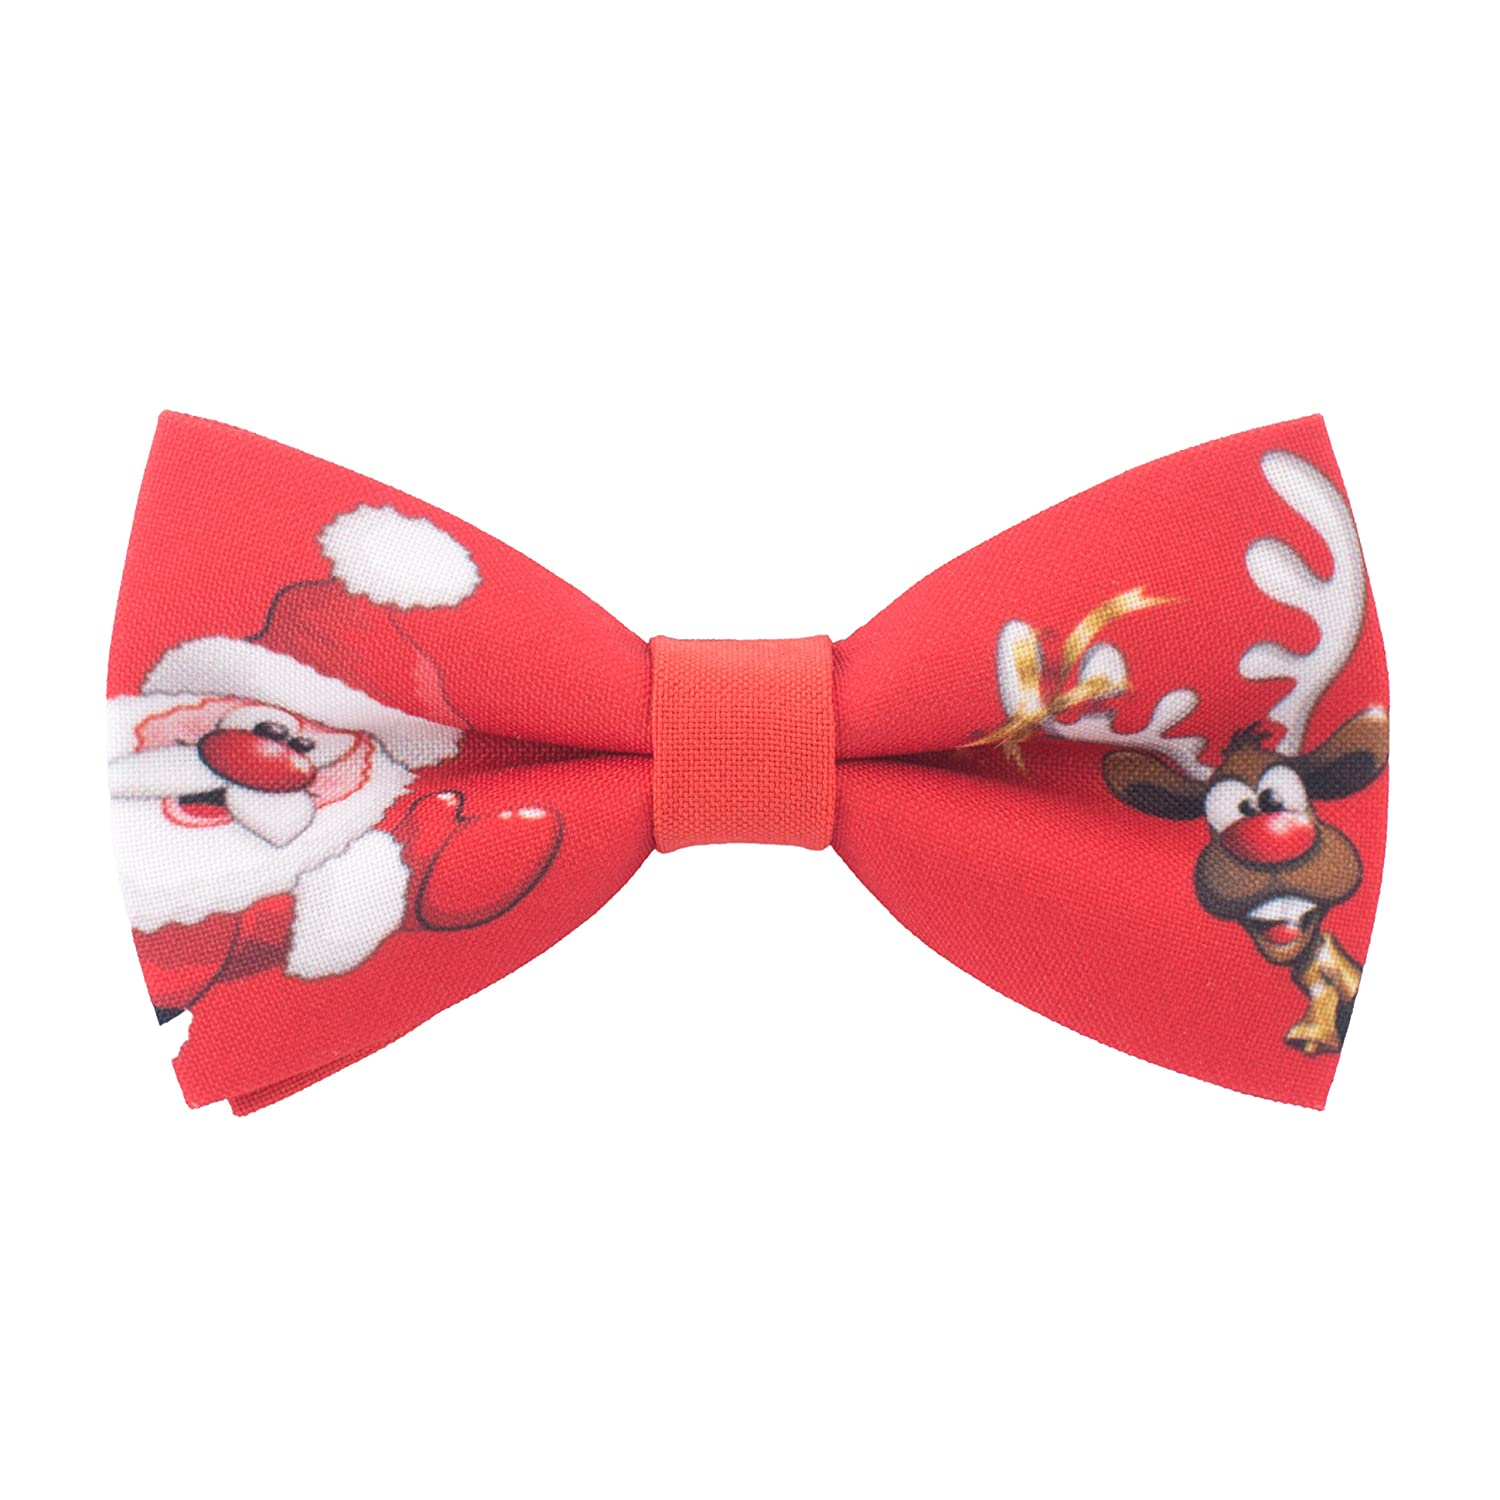 Bow Tie House Red Bow tie pre-tied shape with Christmas Deer & Santa 08711S